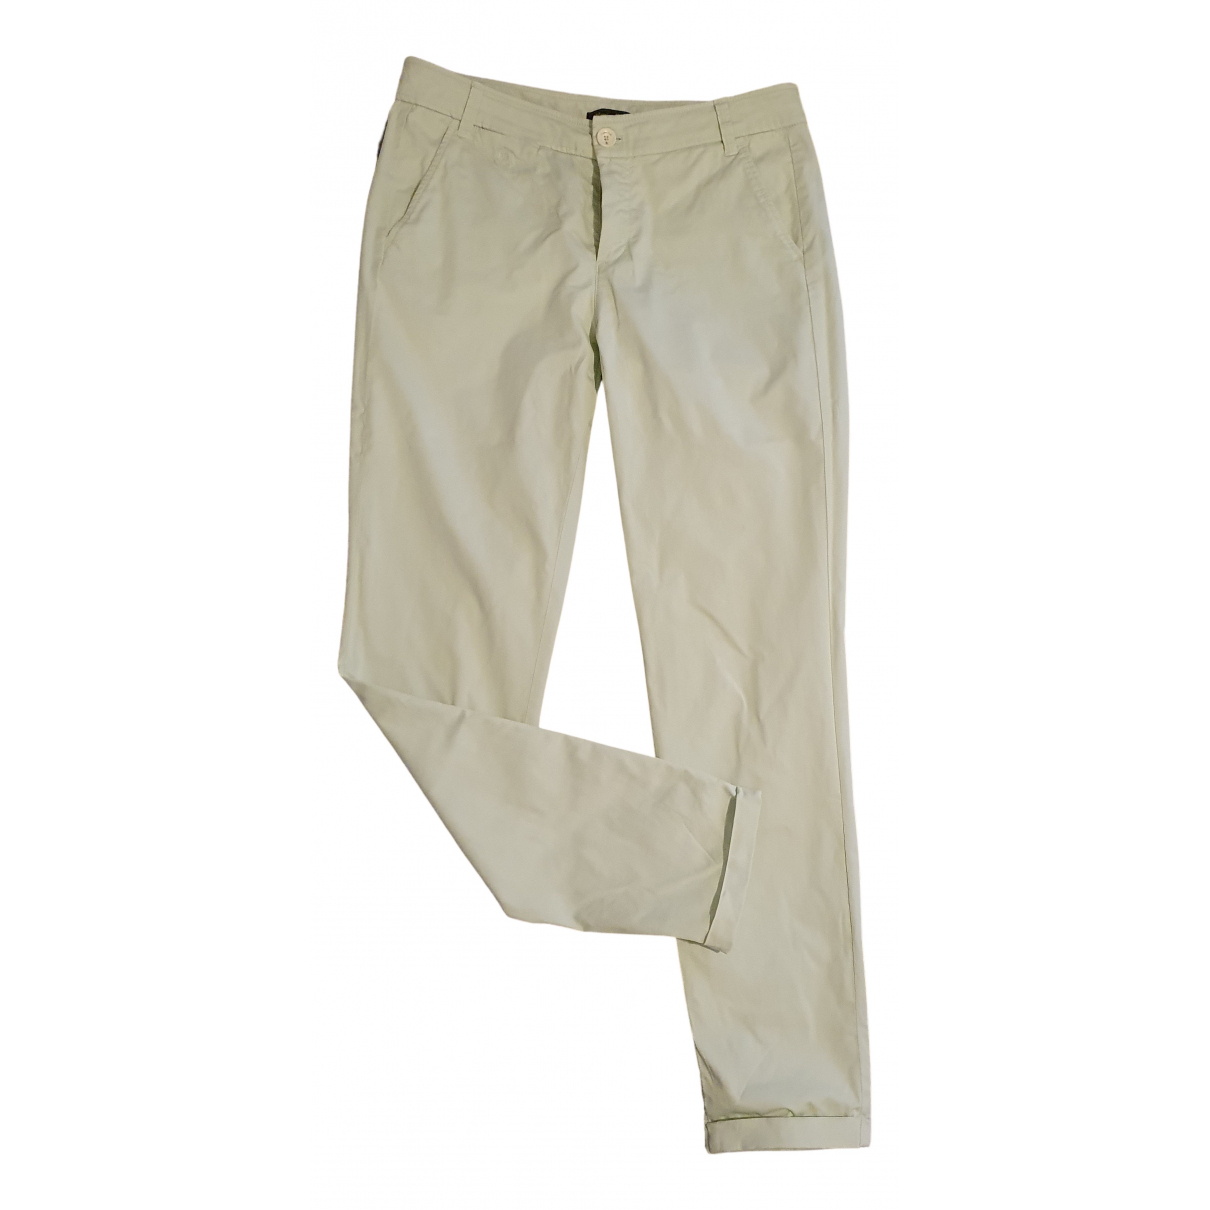 Massimo Dutti N Green Cotton Trousers for Women 36 FR